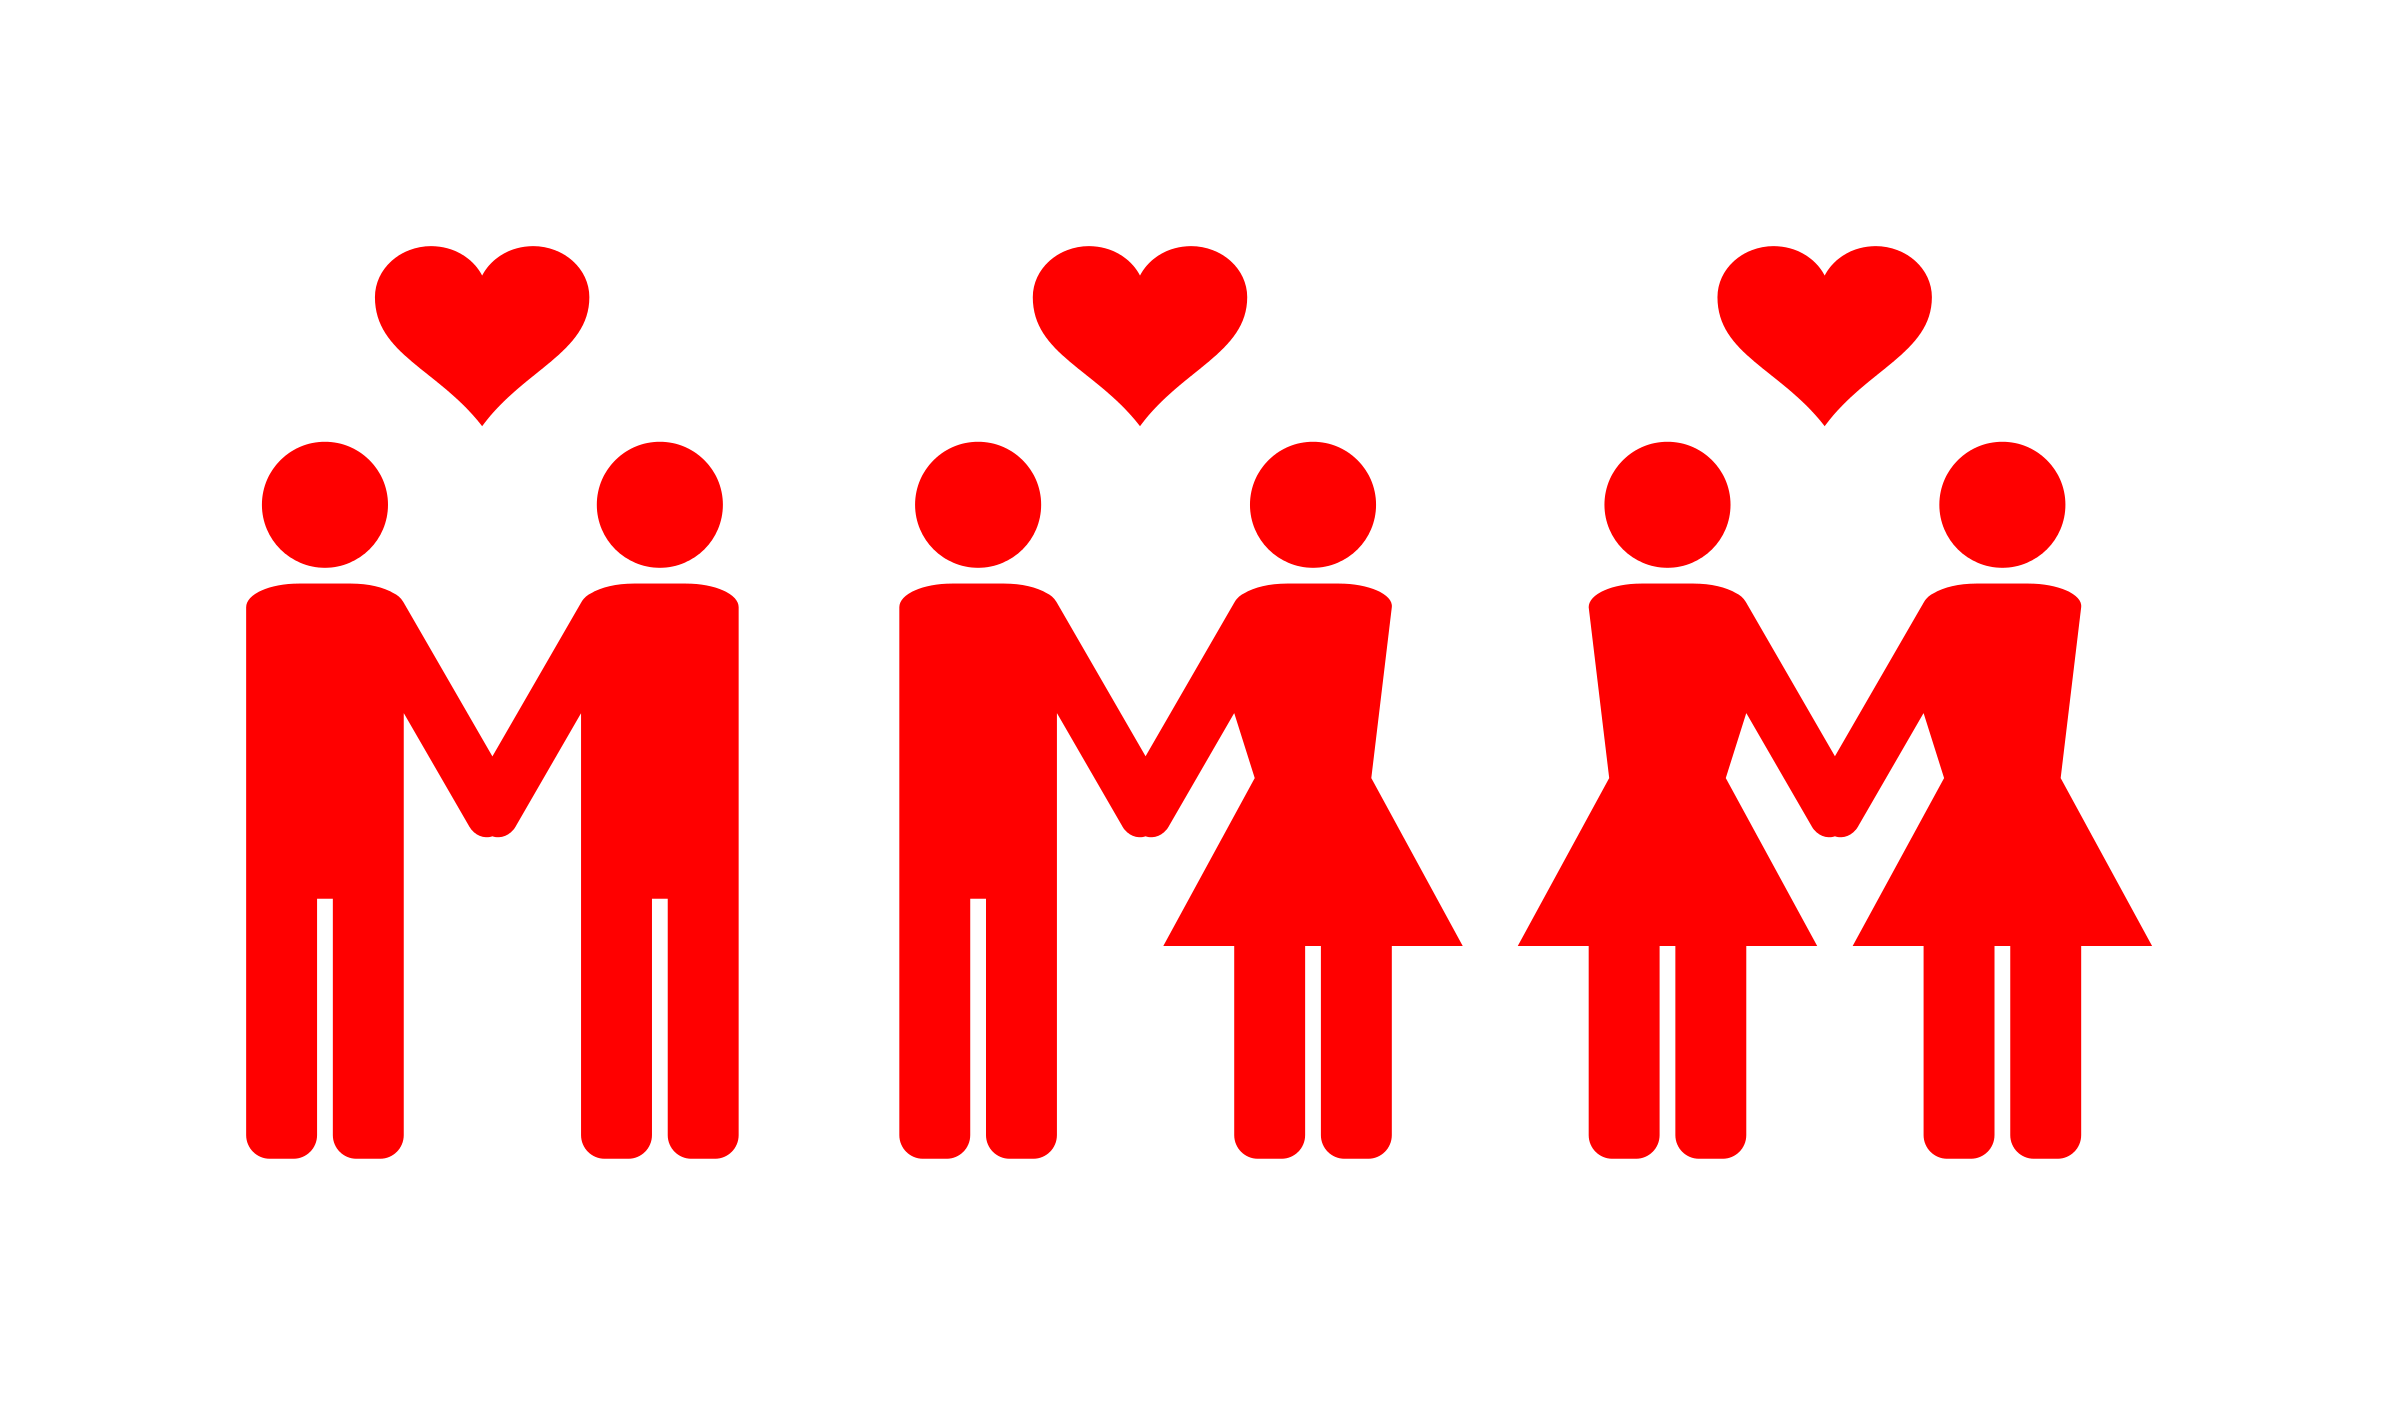 Hand clipart equality. Gay